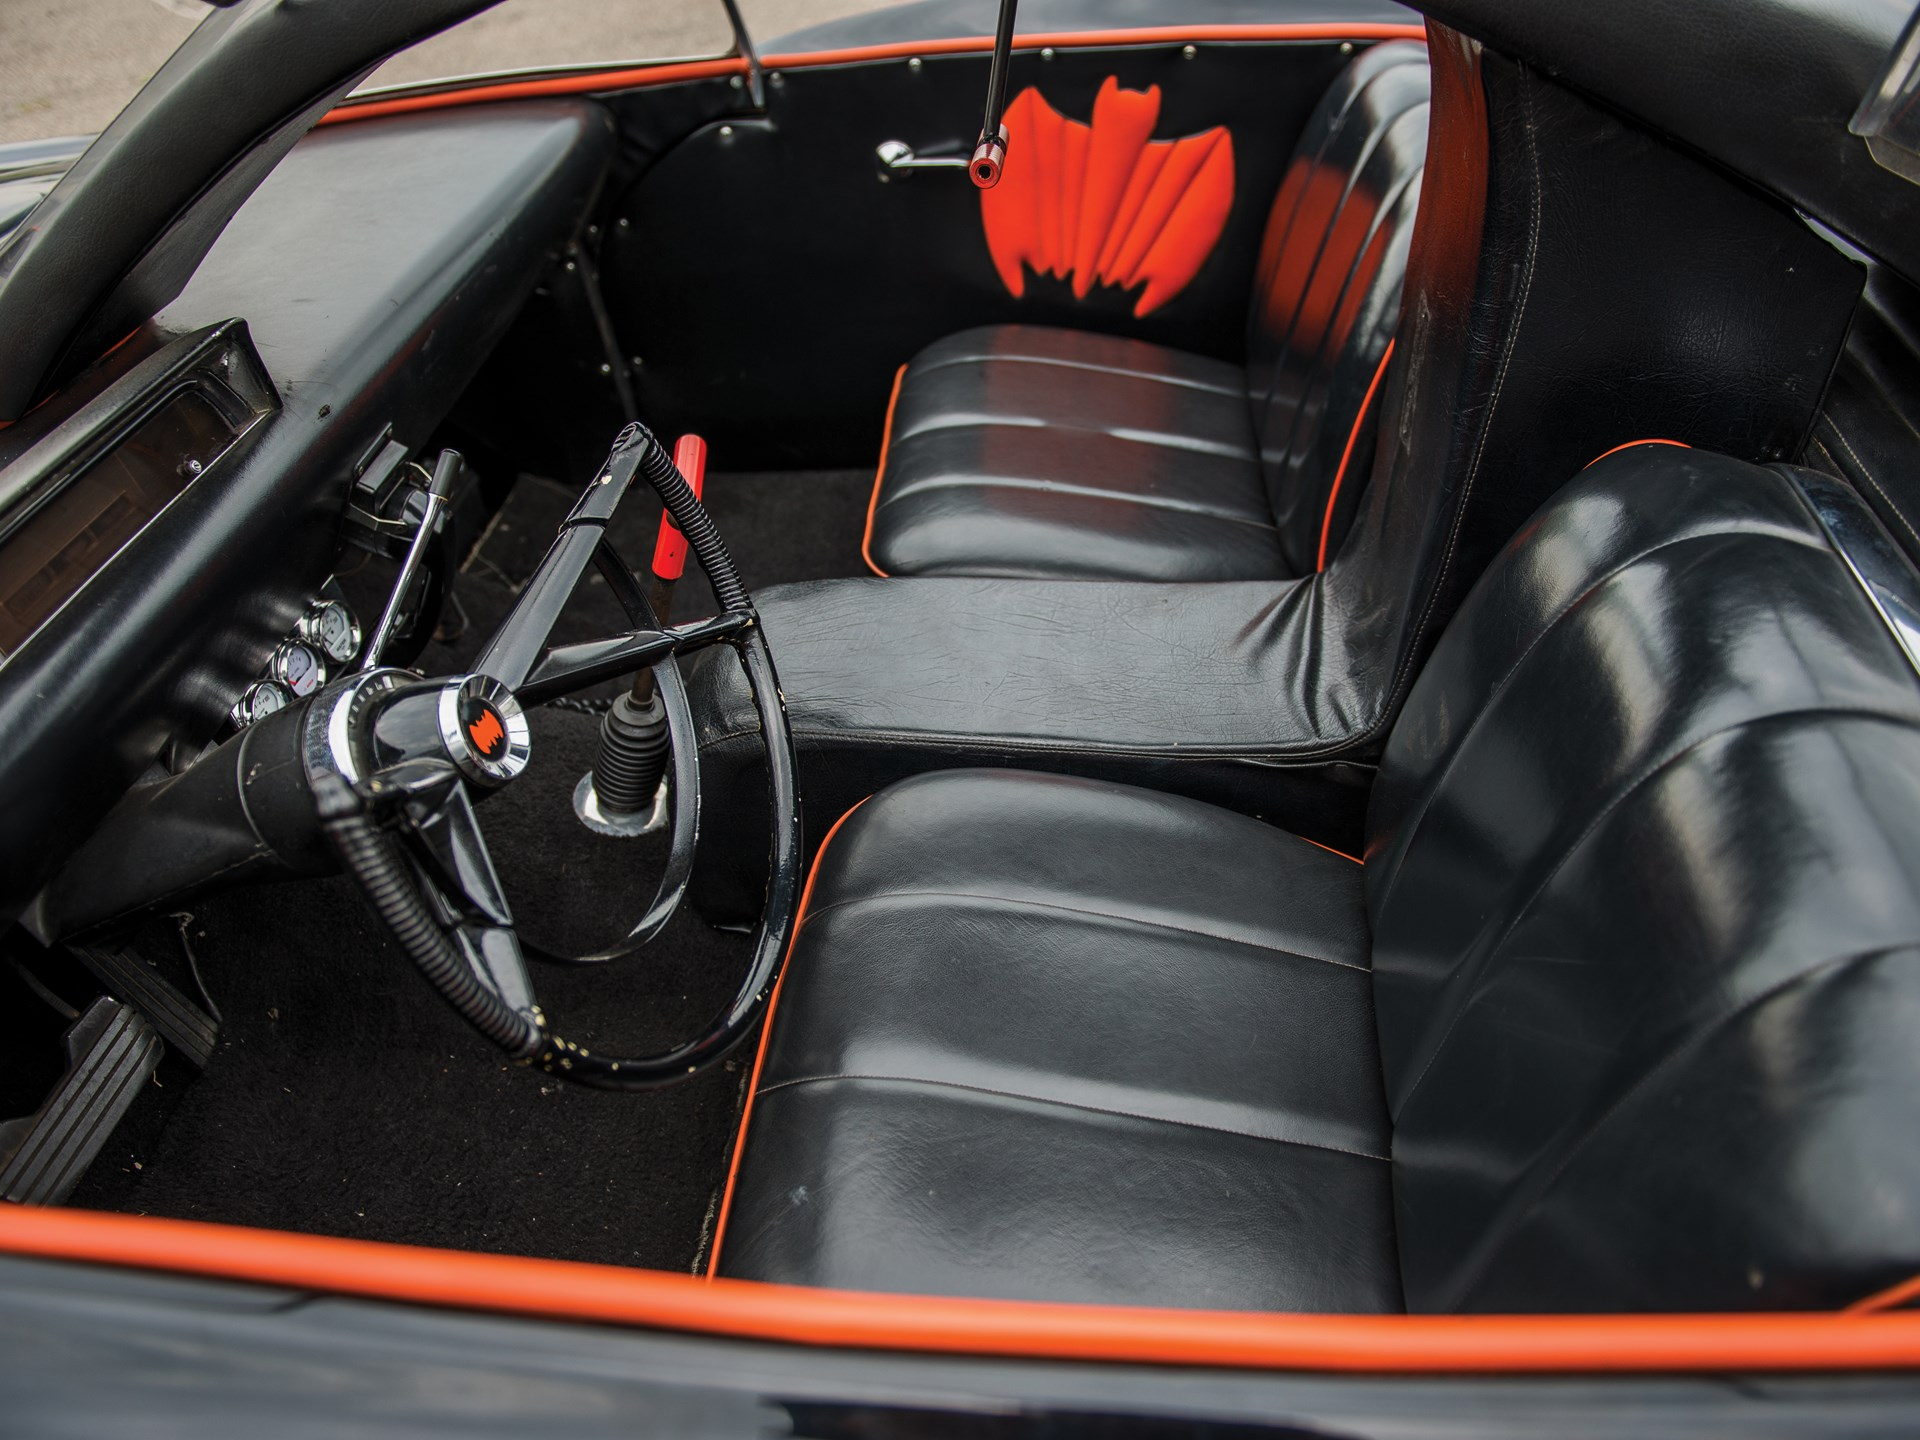 1966 Batmobile Recreation interior seats